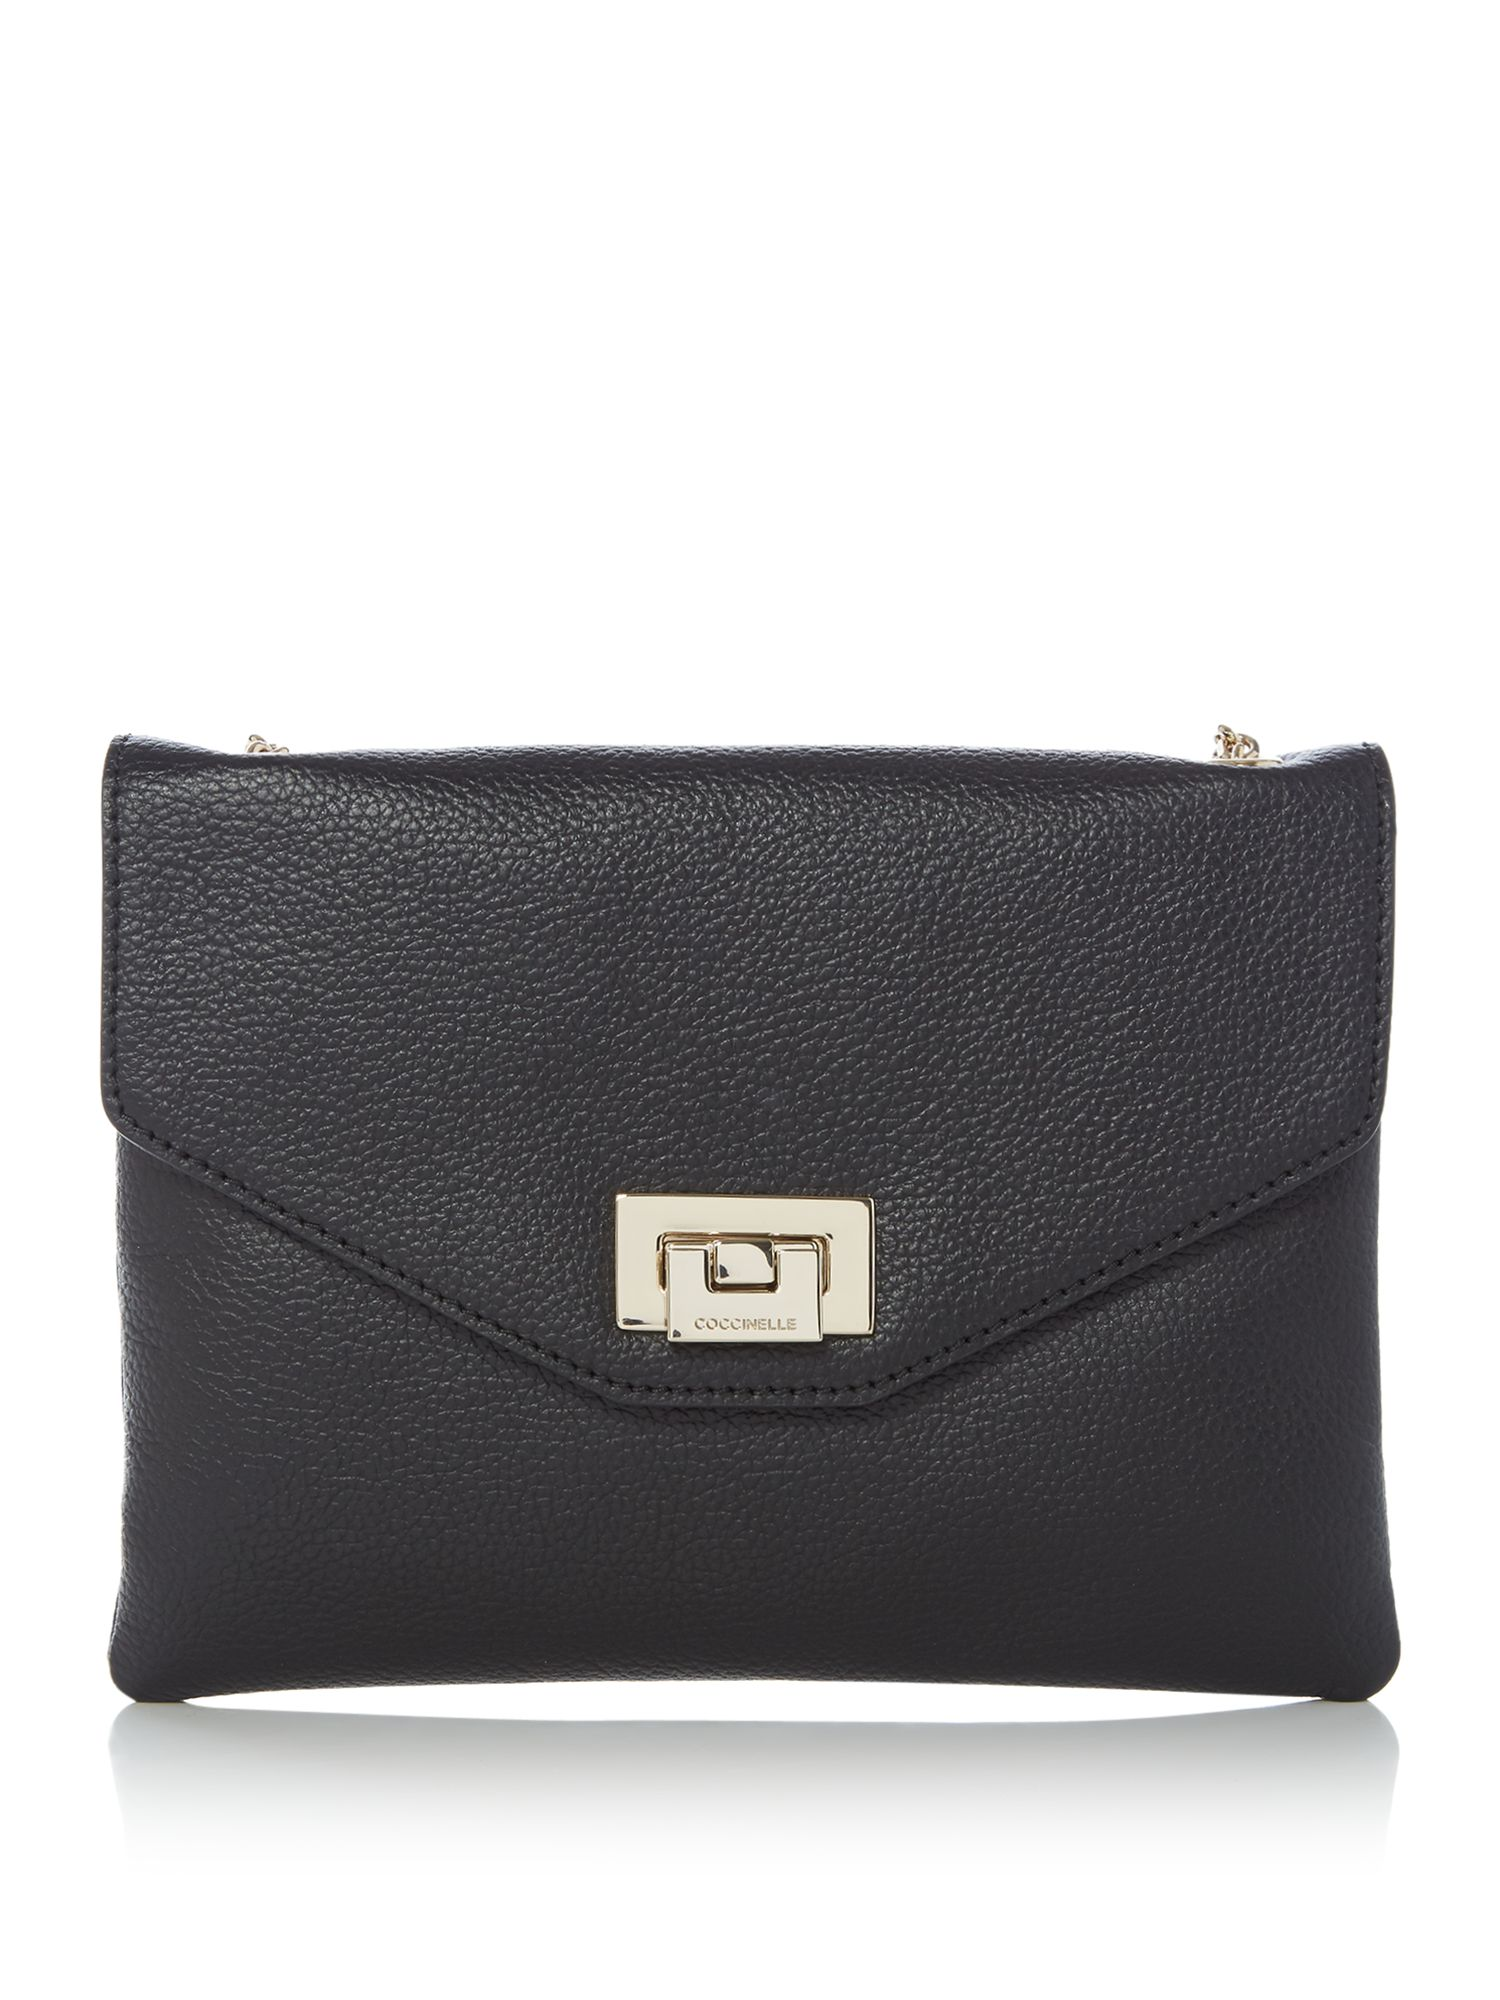 Coccinelle Florie clutch with chain strap, Black